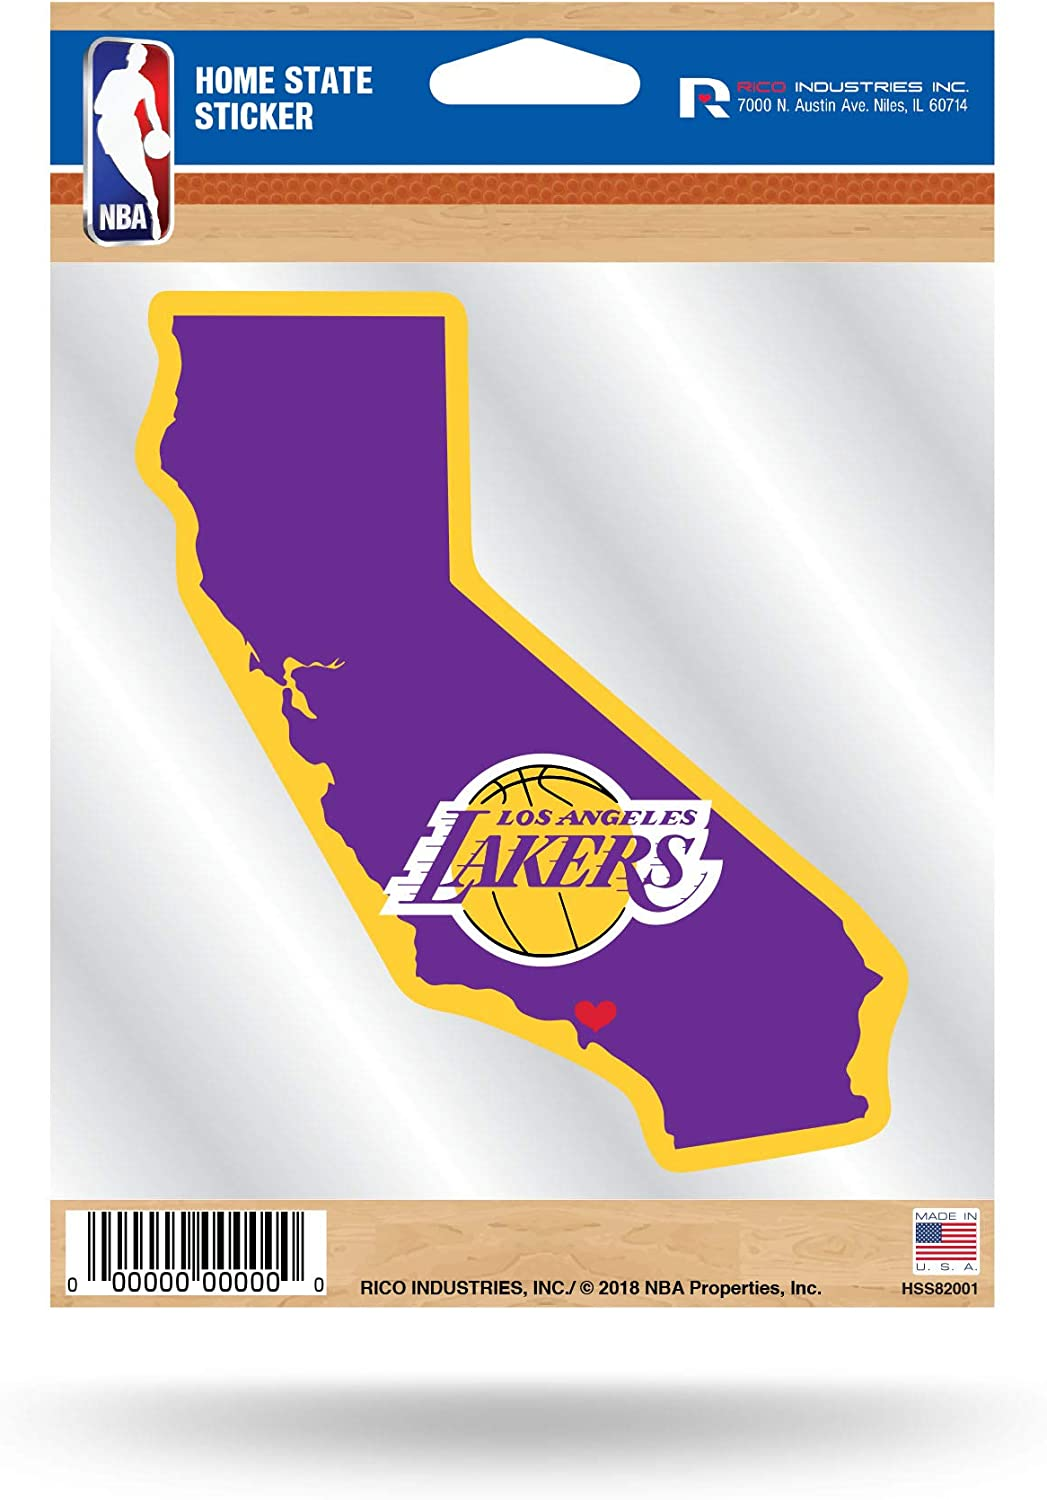 Rico Industries NBA Home State Sticker